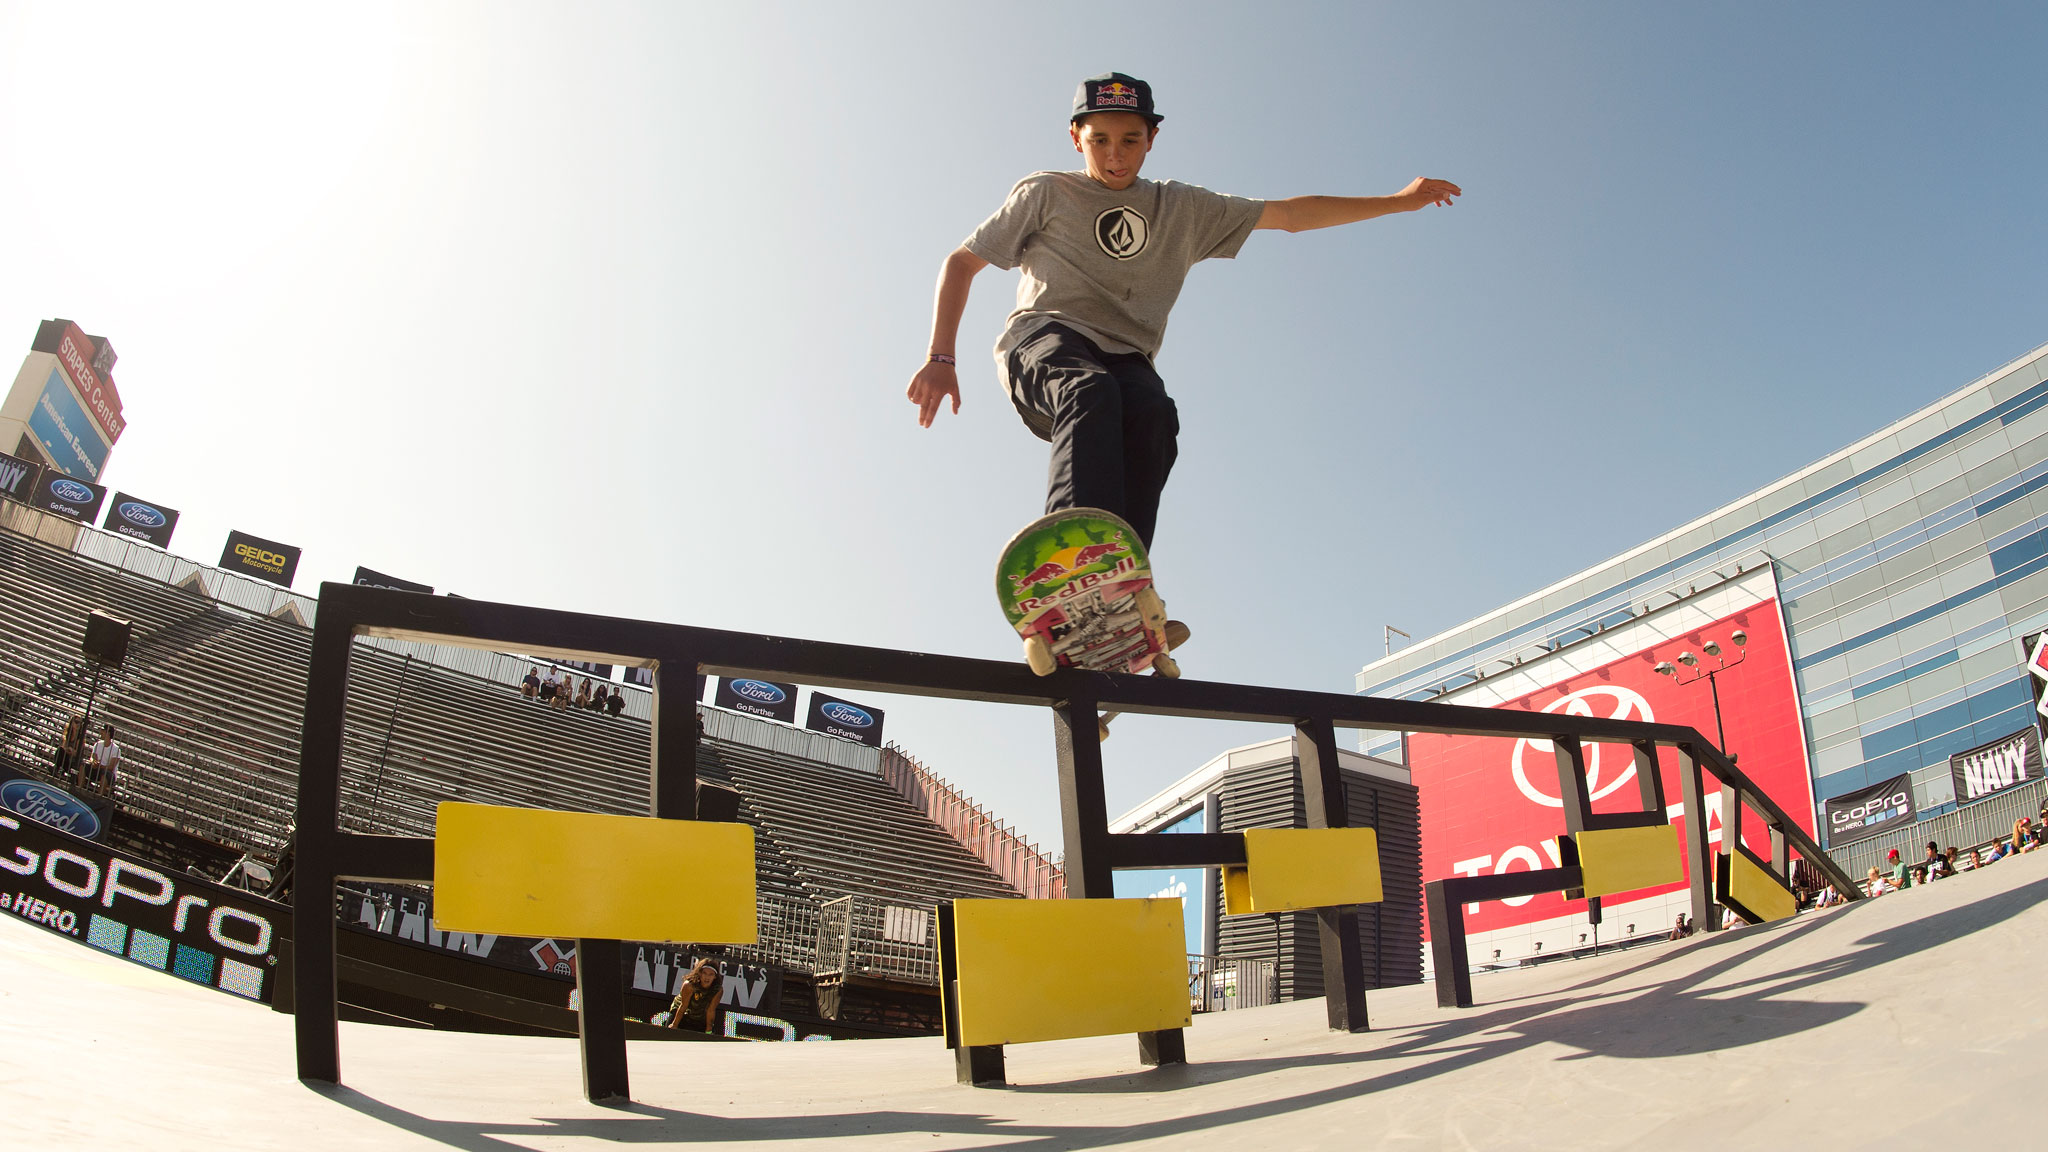 Skateboarder Alex Midler, now 15, got his first sponsor at age 8.